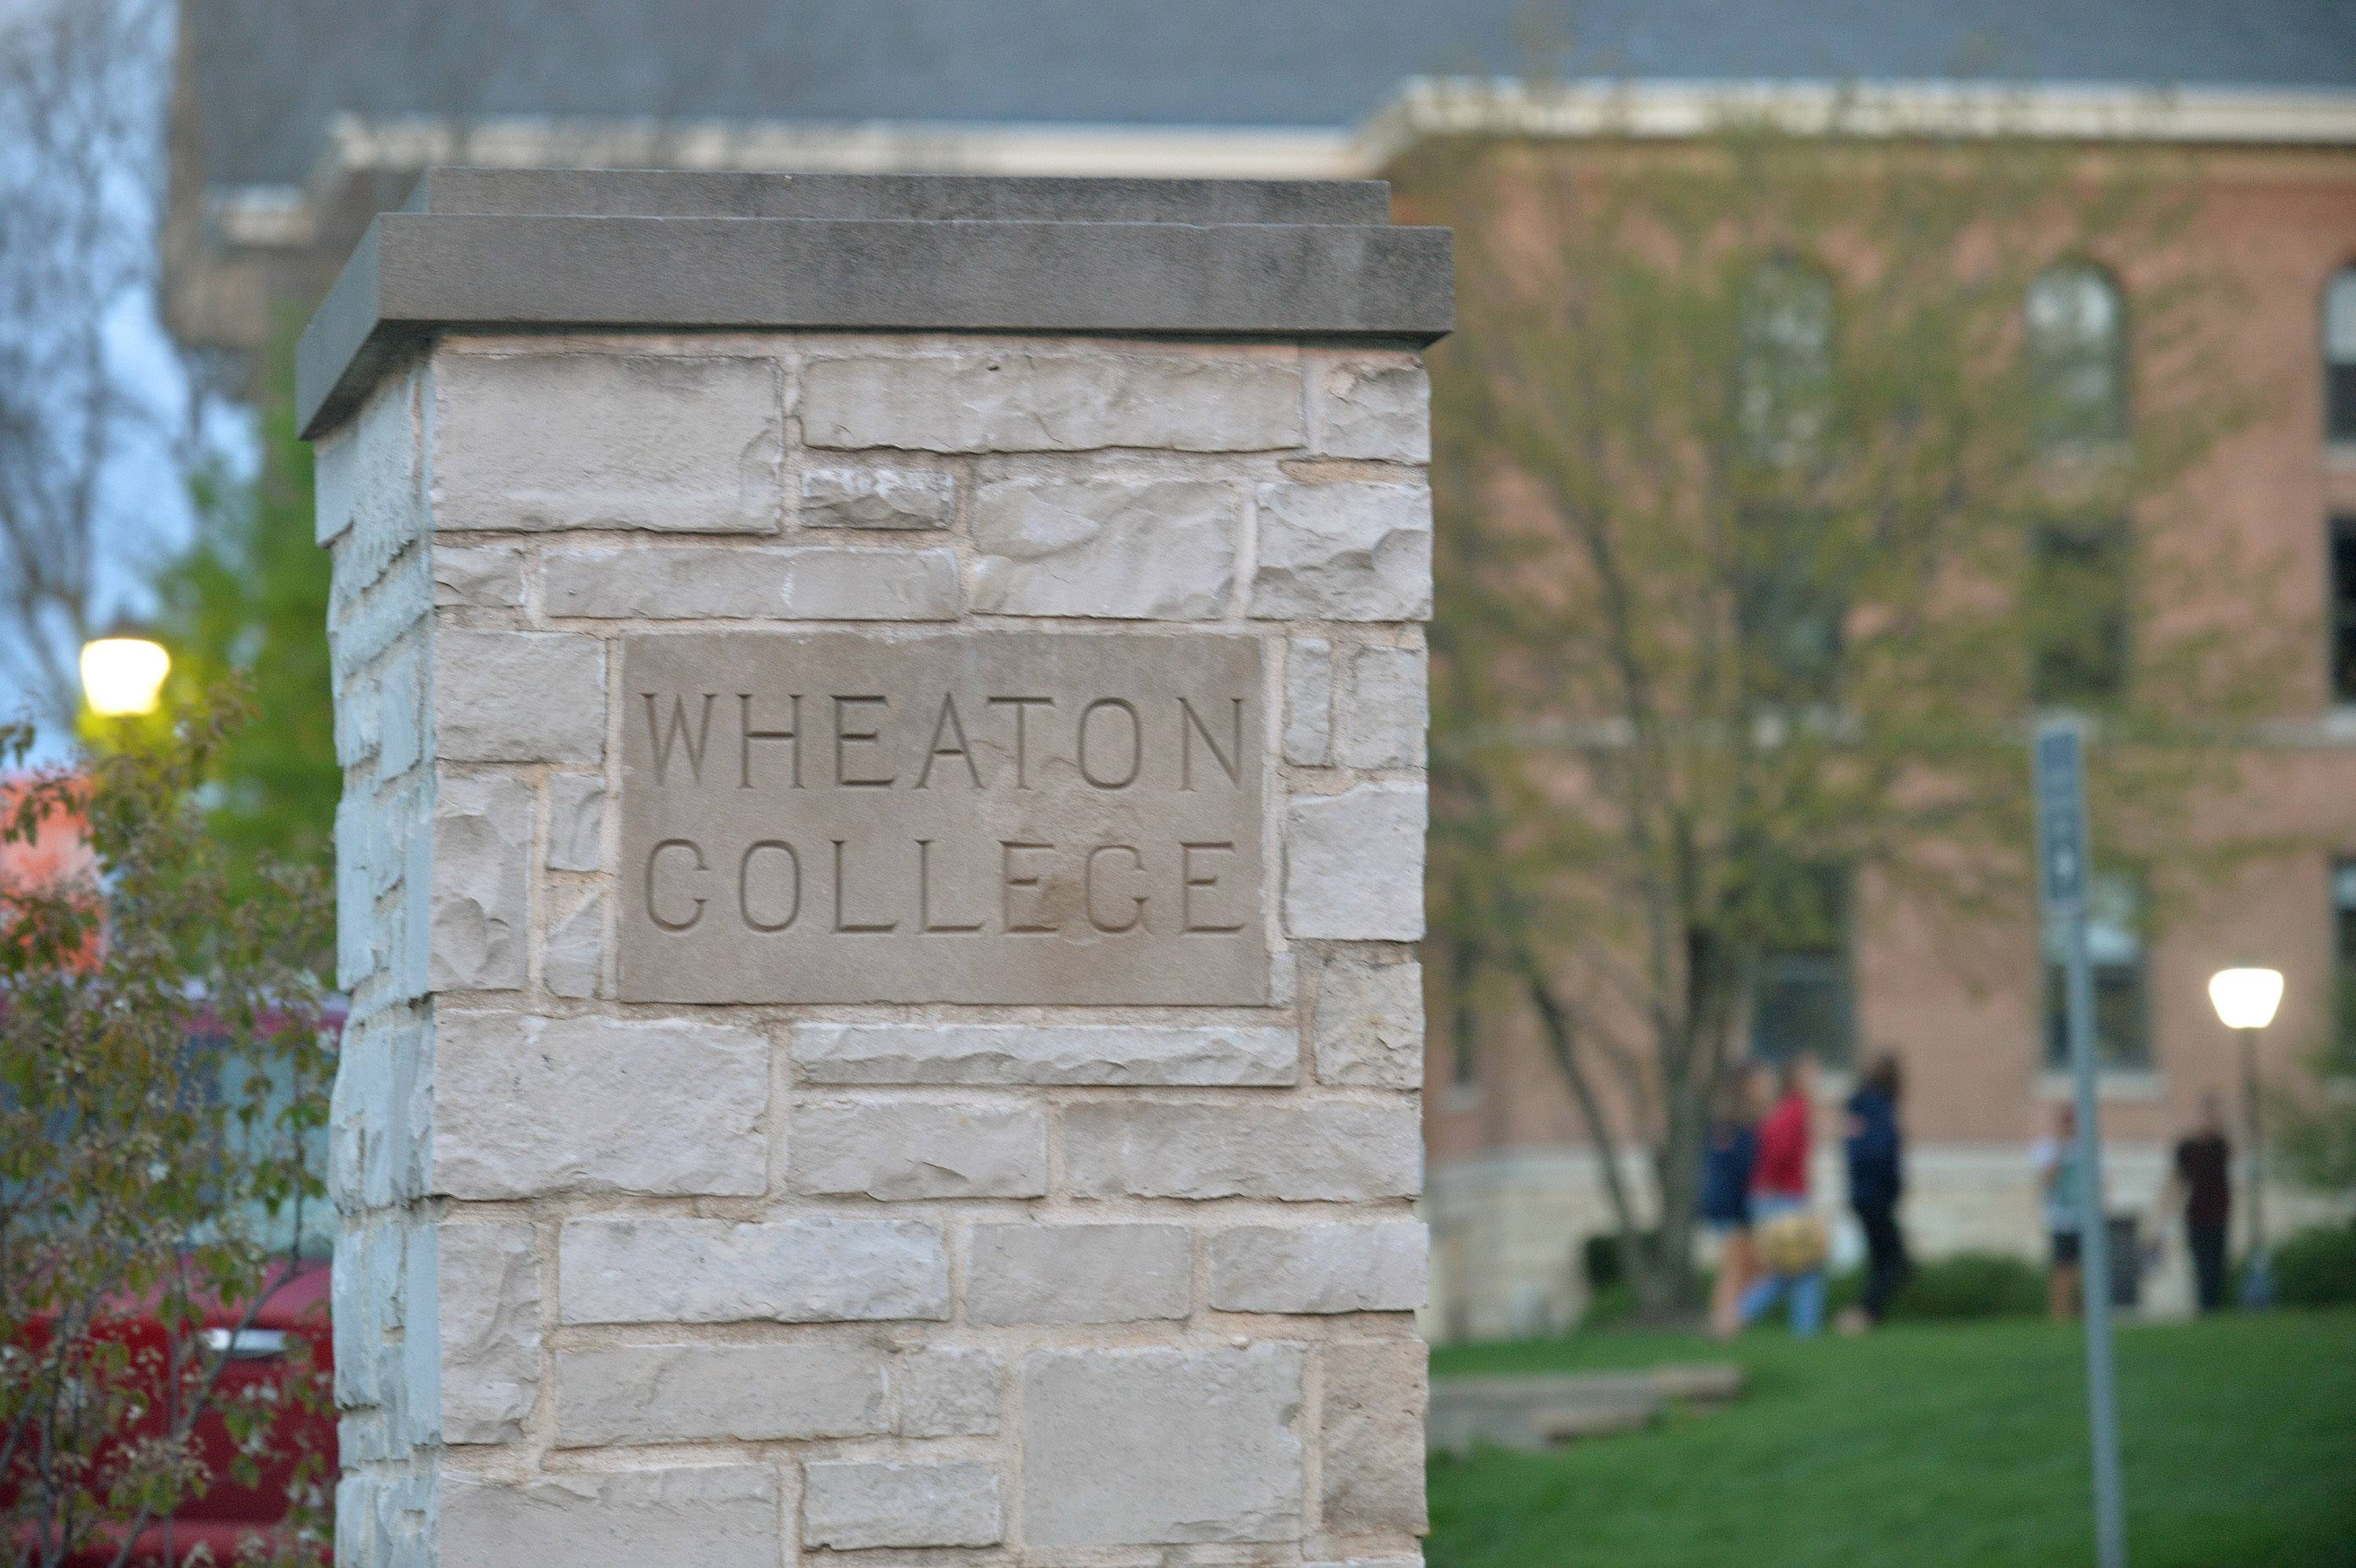 Five Wheaton College football players are facing charges in connection with a 2016 hazing incident.